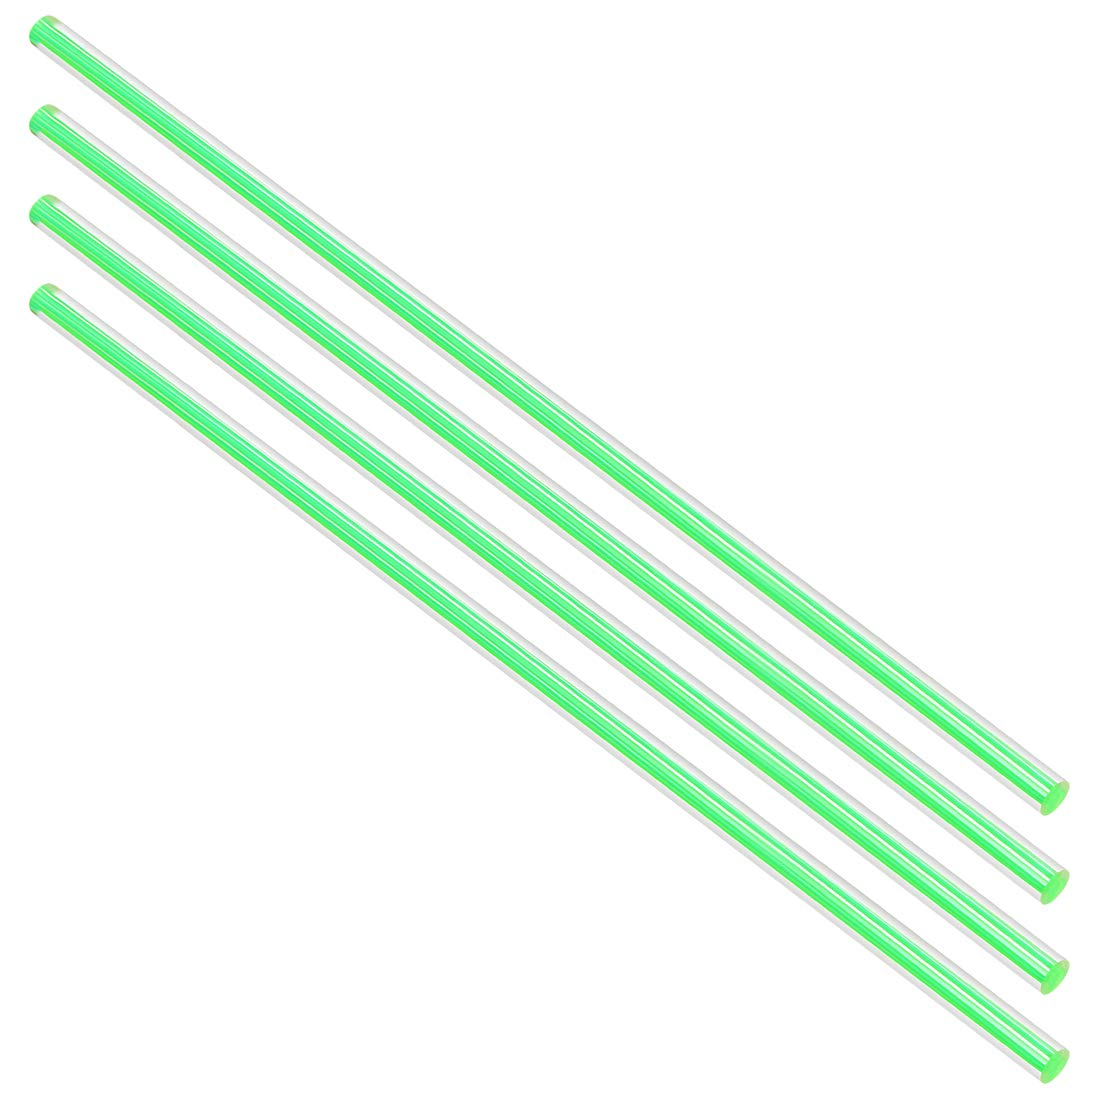 uxcell Acrylic Round Rod,1//4 Diameter 10 inch Length,Straight Dark Blue Line,Solid Plxi Glass Plastic Lucite PMMA Bar Stick 4pcs